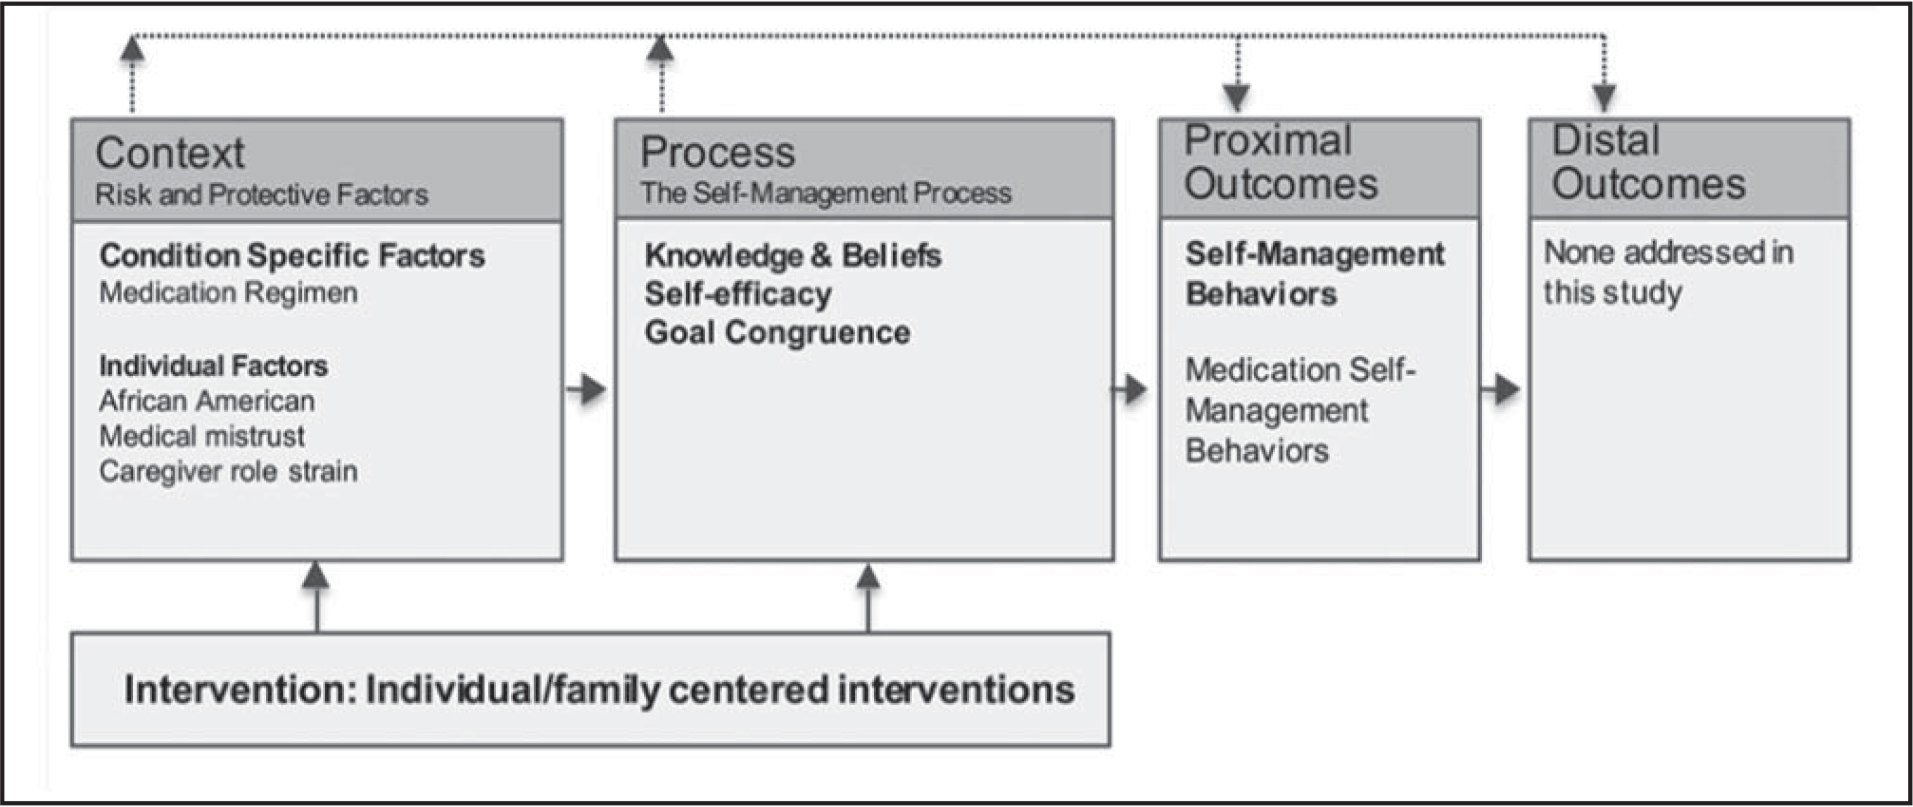 Model of Individual and Family Self-Management Theory applied to medication self-management in African American older women. Adapted with permission from Ryan and Sawin (2009).